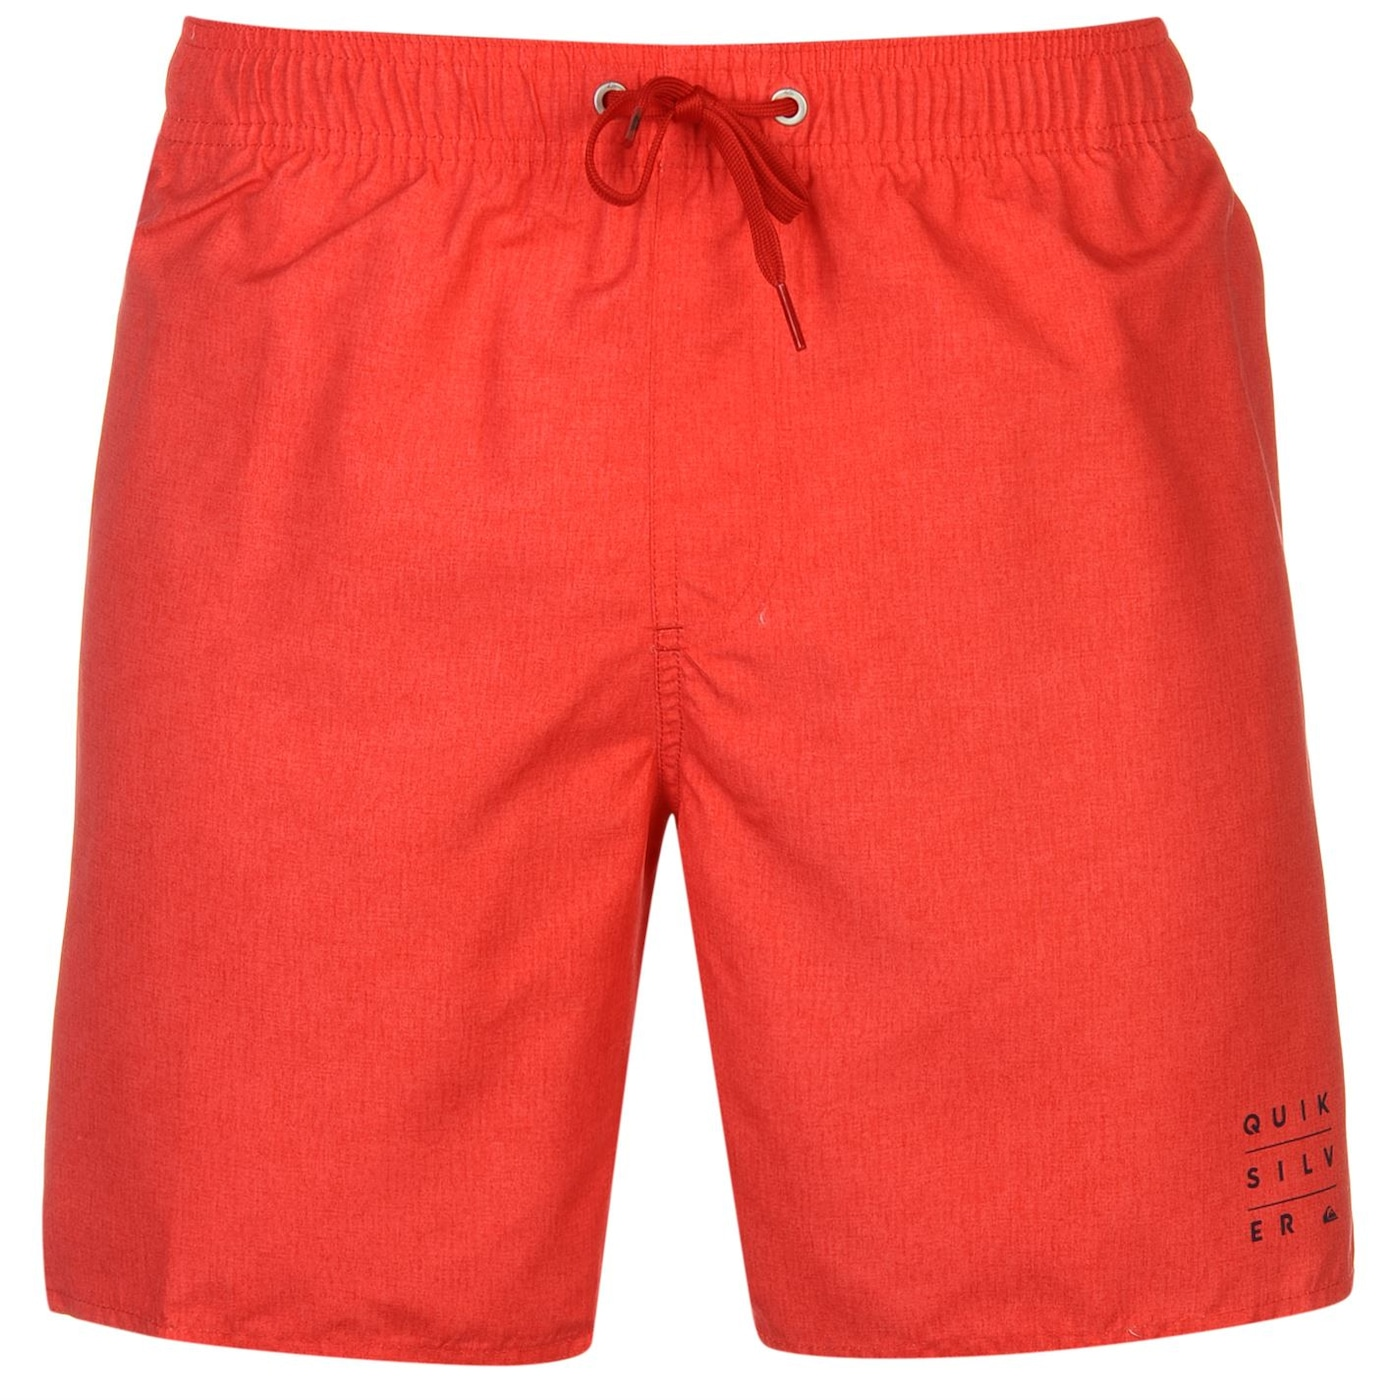 Quiksilver Fruit Swim Shorts pánske